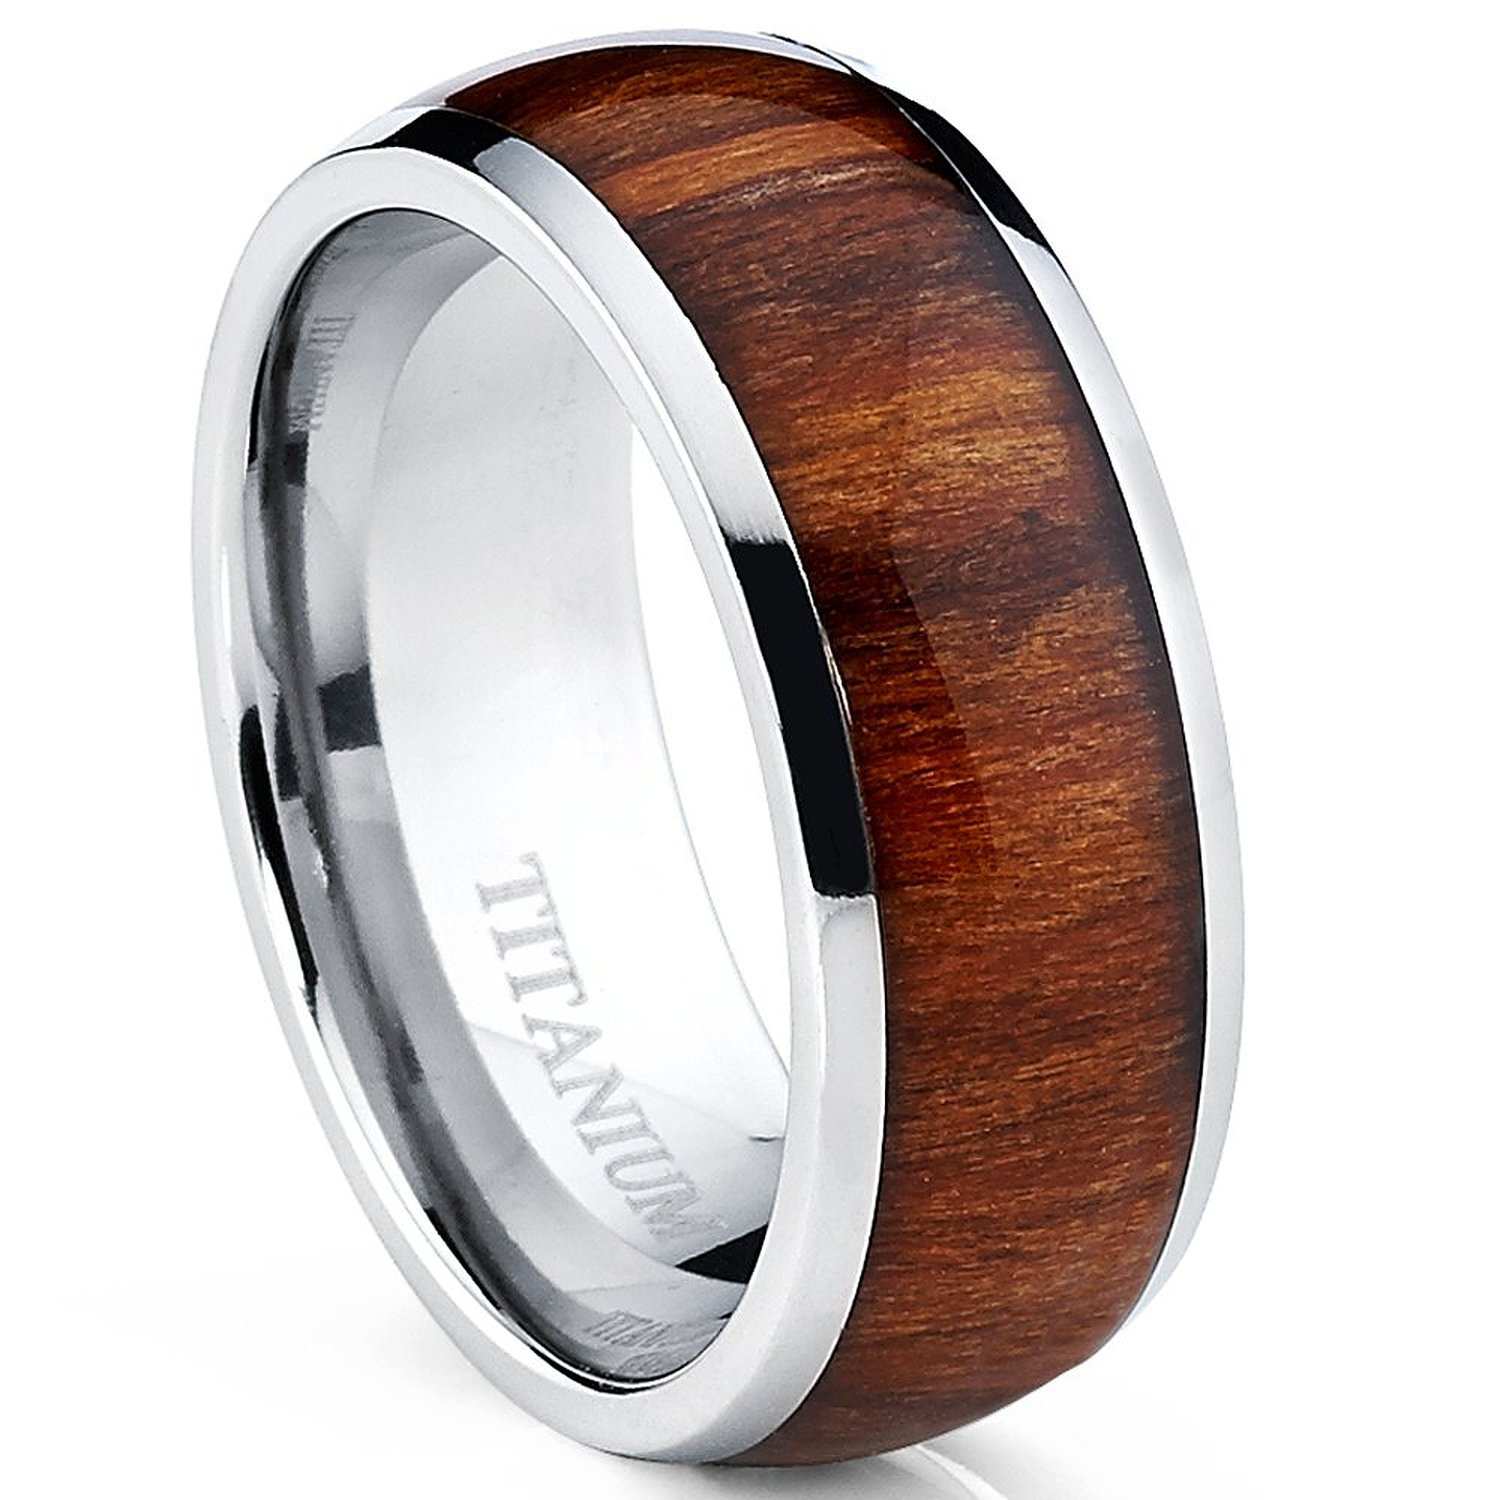 Koa Wood Titanium Men's Ring, Wedding Band, Engagement Ring Genuine Hawaiian Wood - Sizes 9-13 (13)